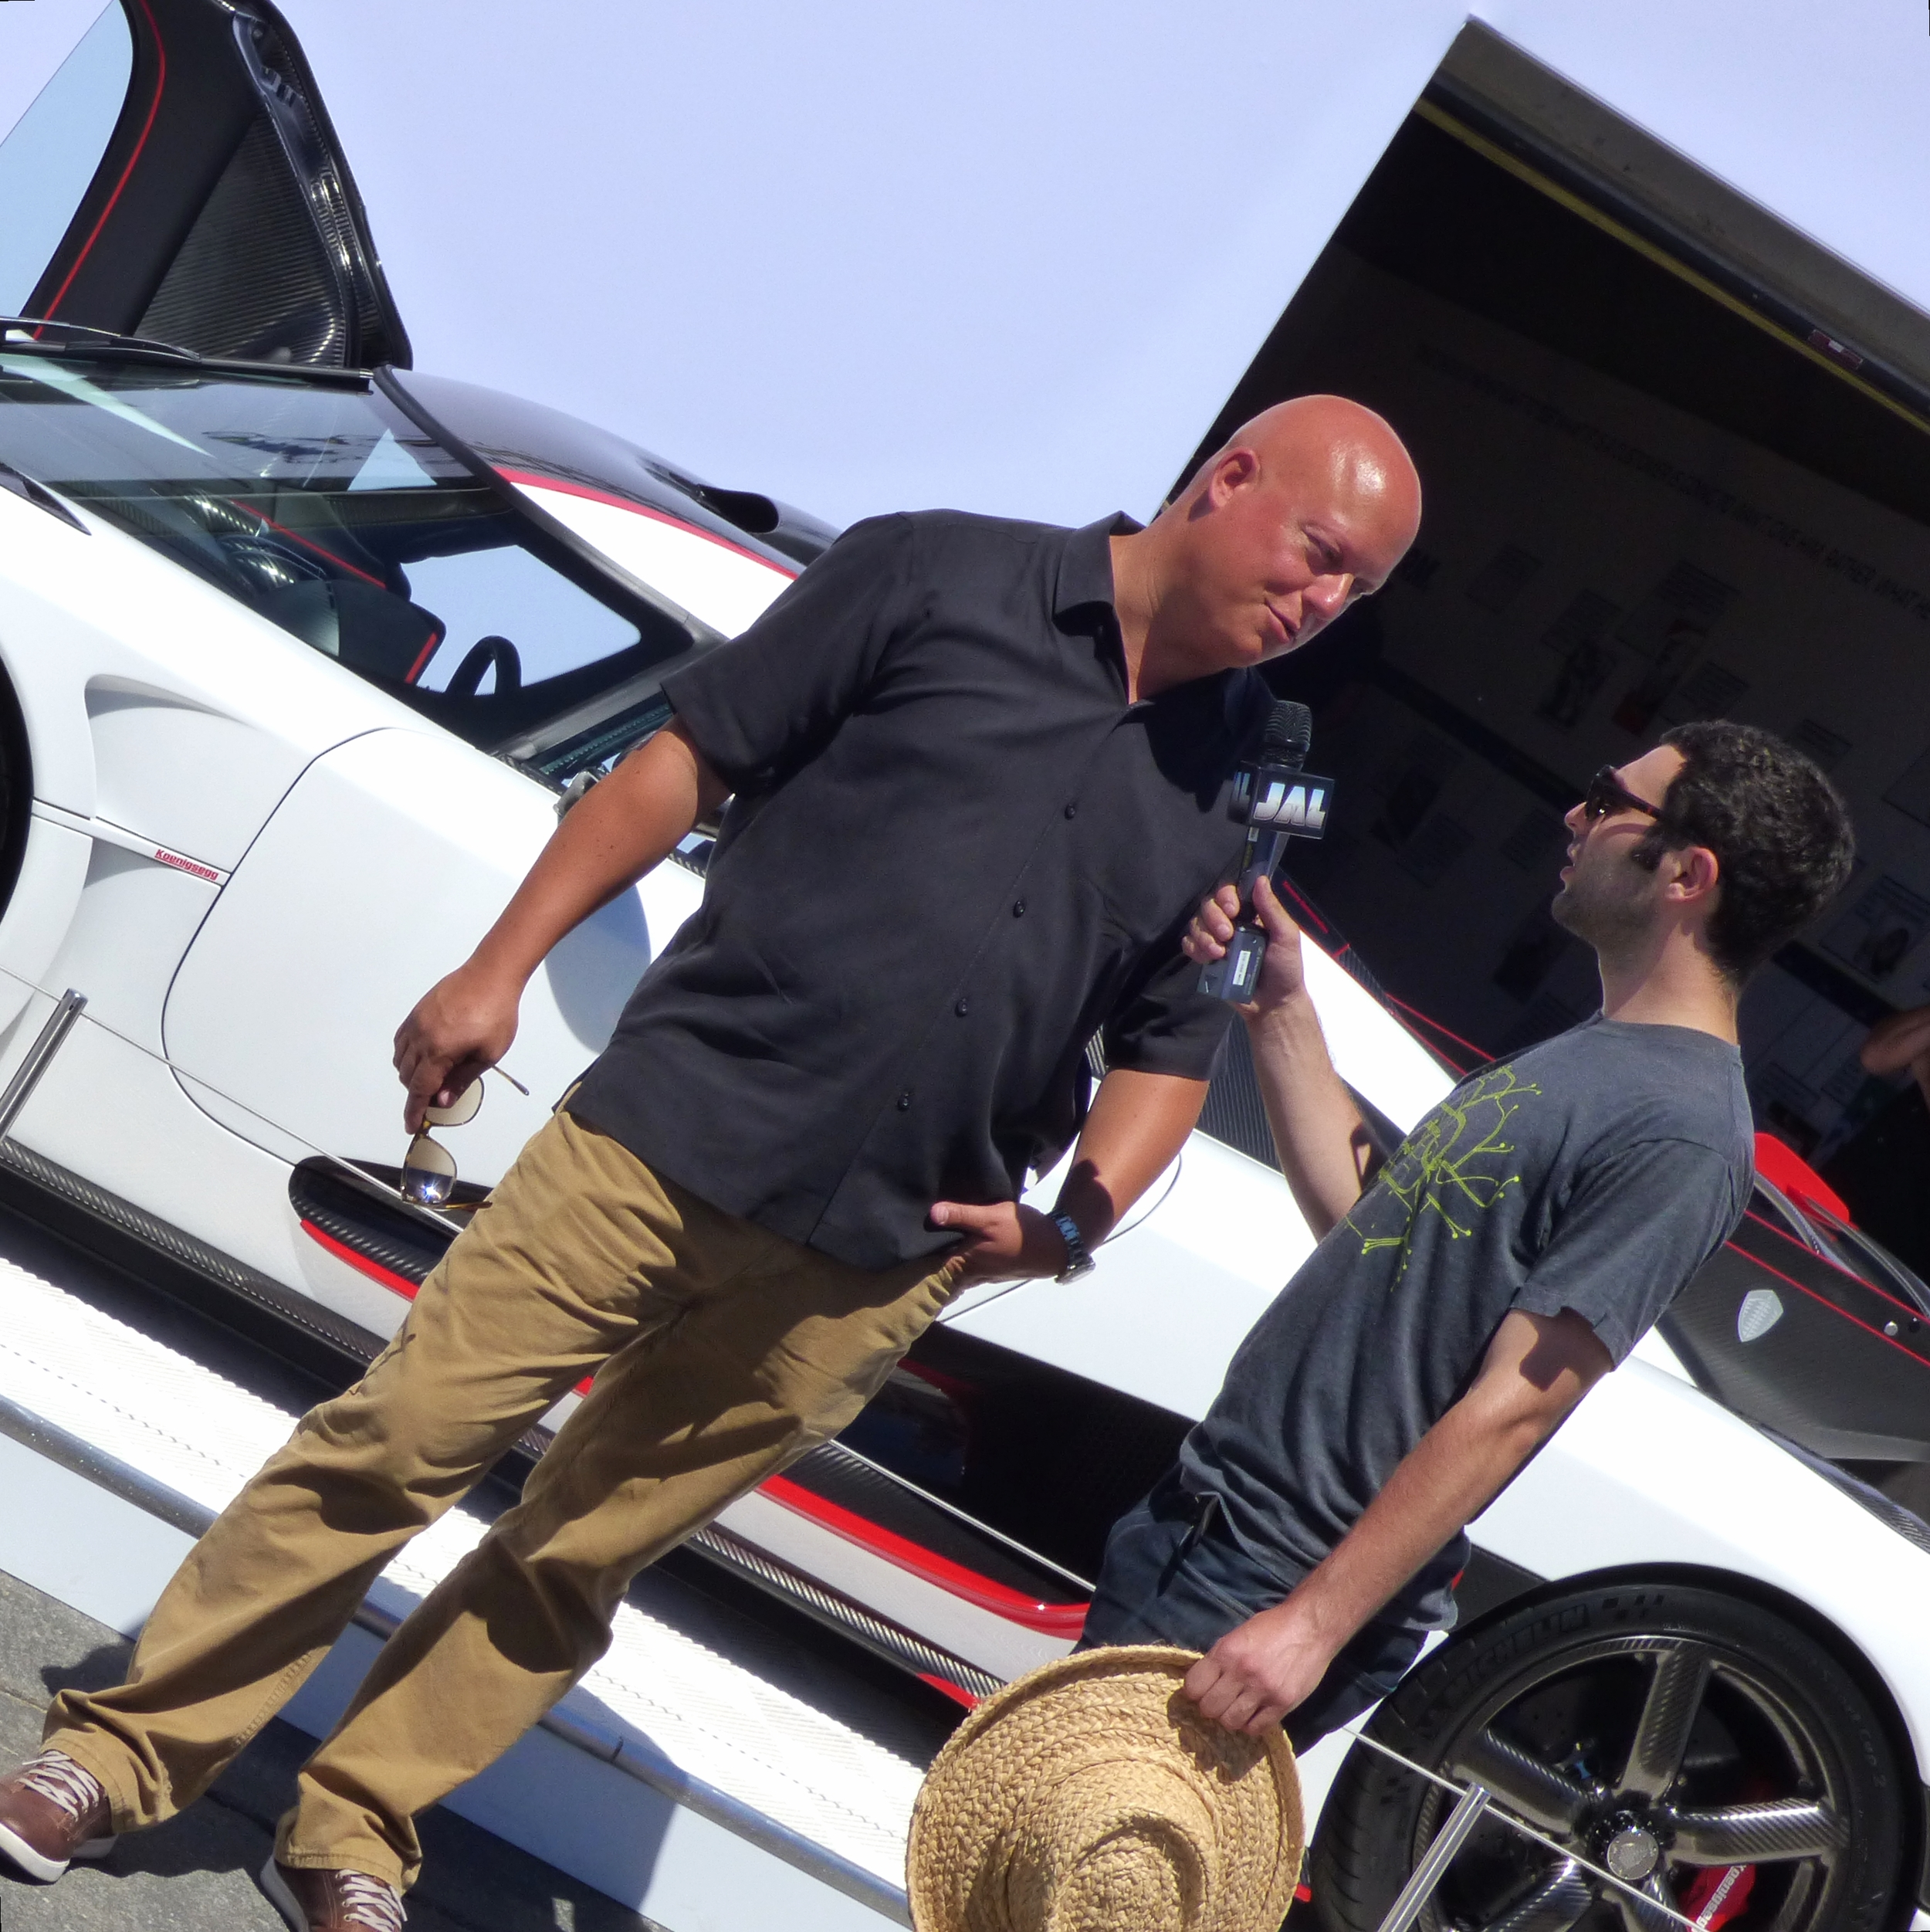 Christian von Koenigsegg doing an explainer for the press.